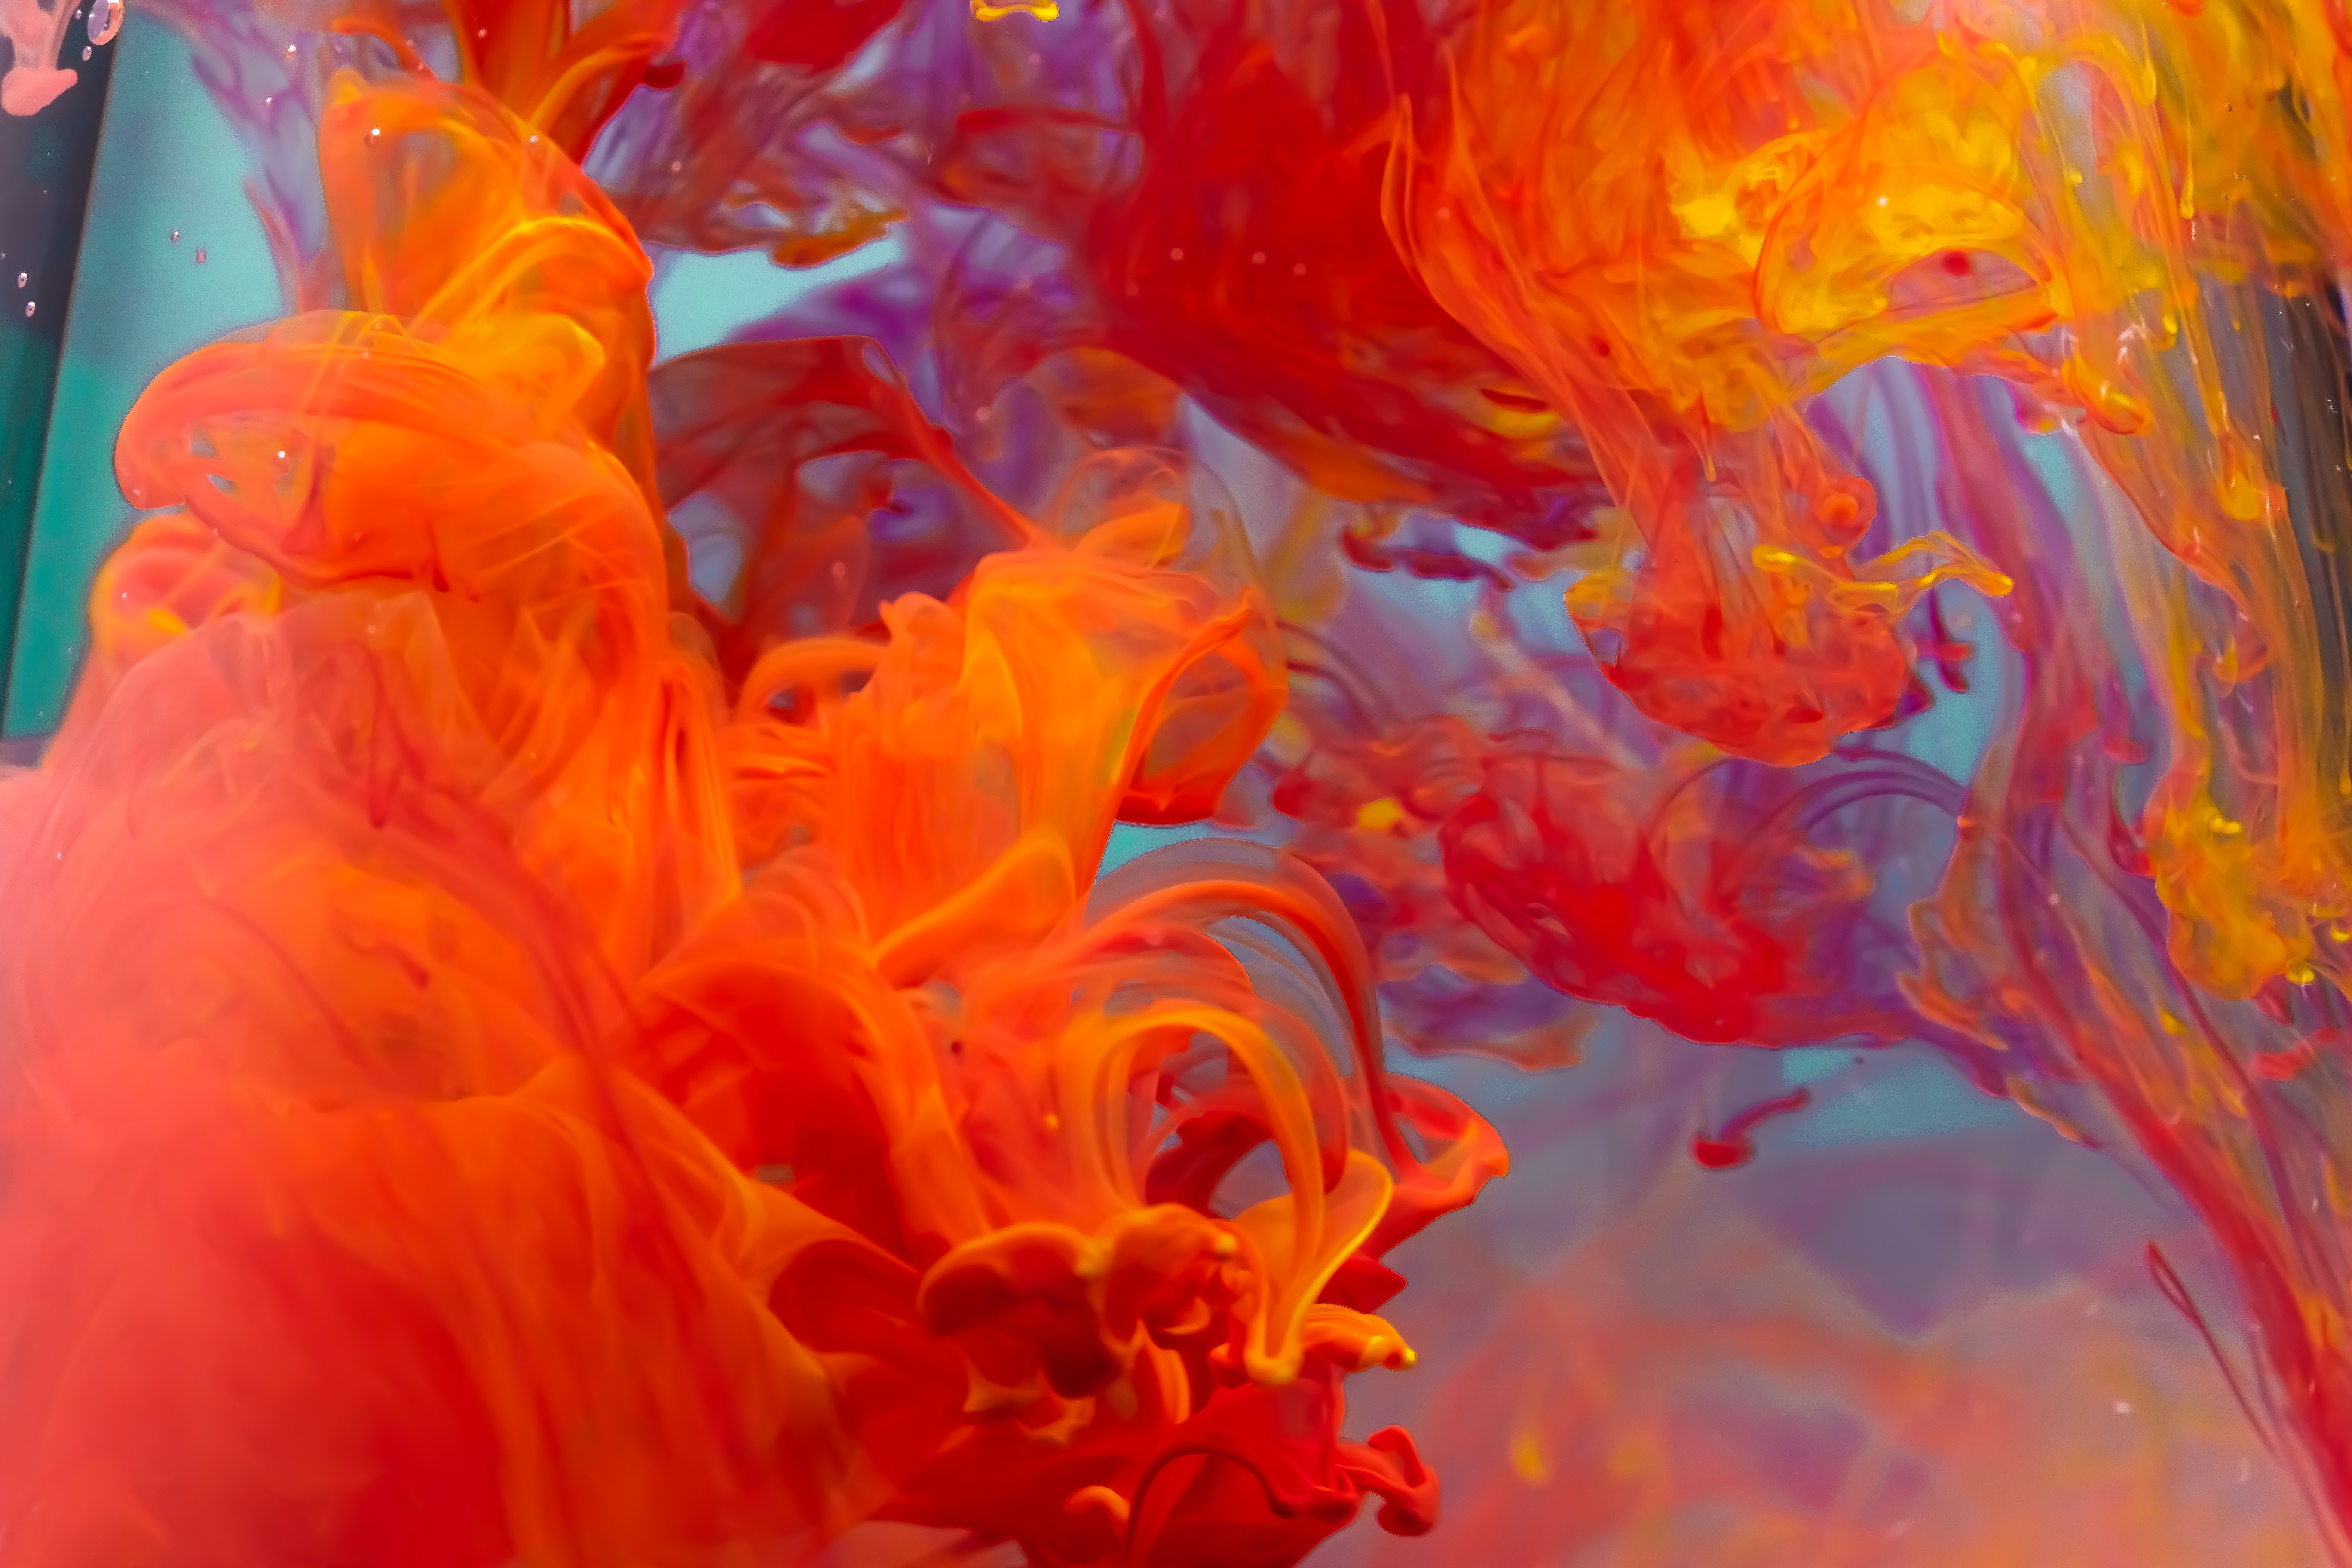 81146 download wallpaper Paint, Macro, Liquid, Clots screensavers and pictures for free